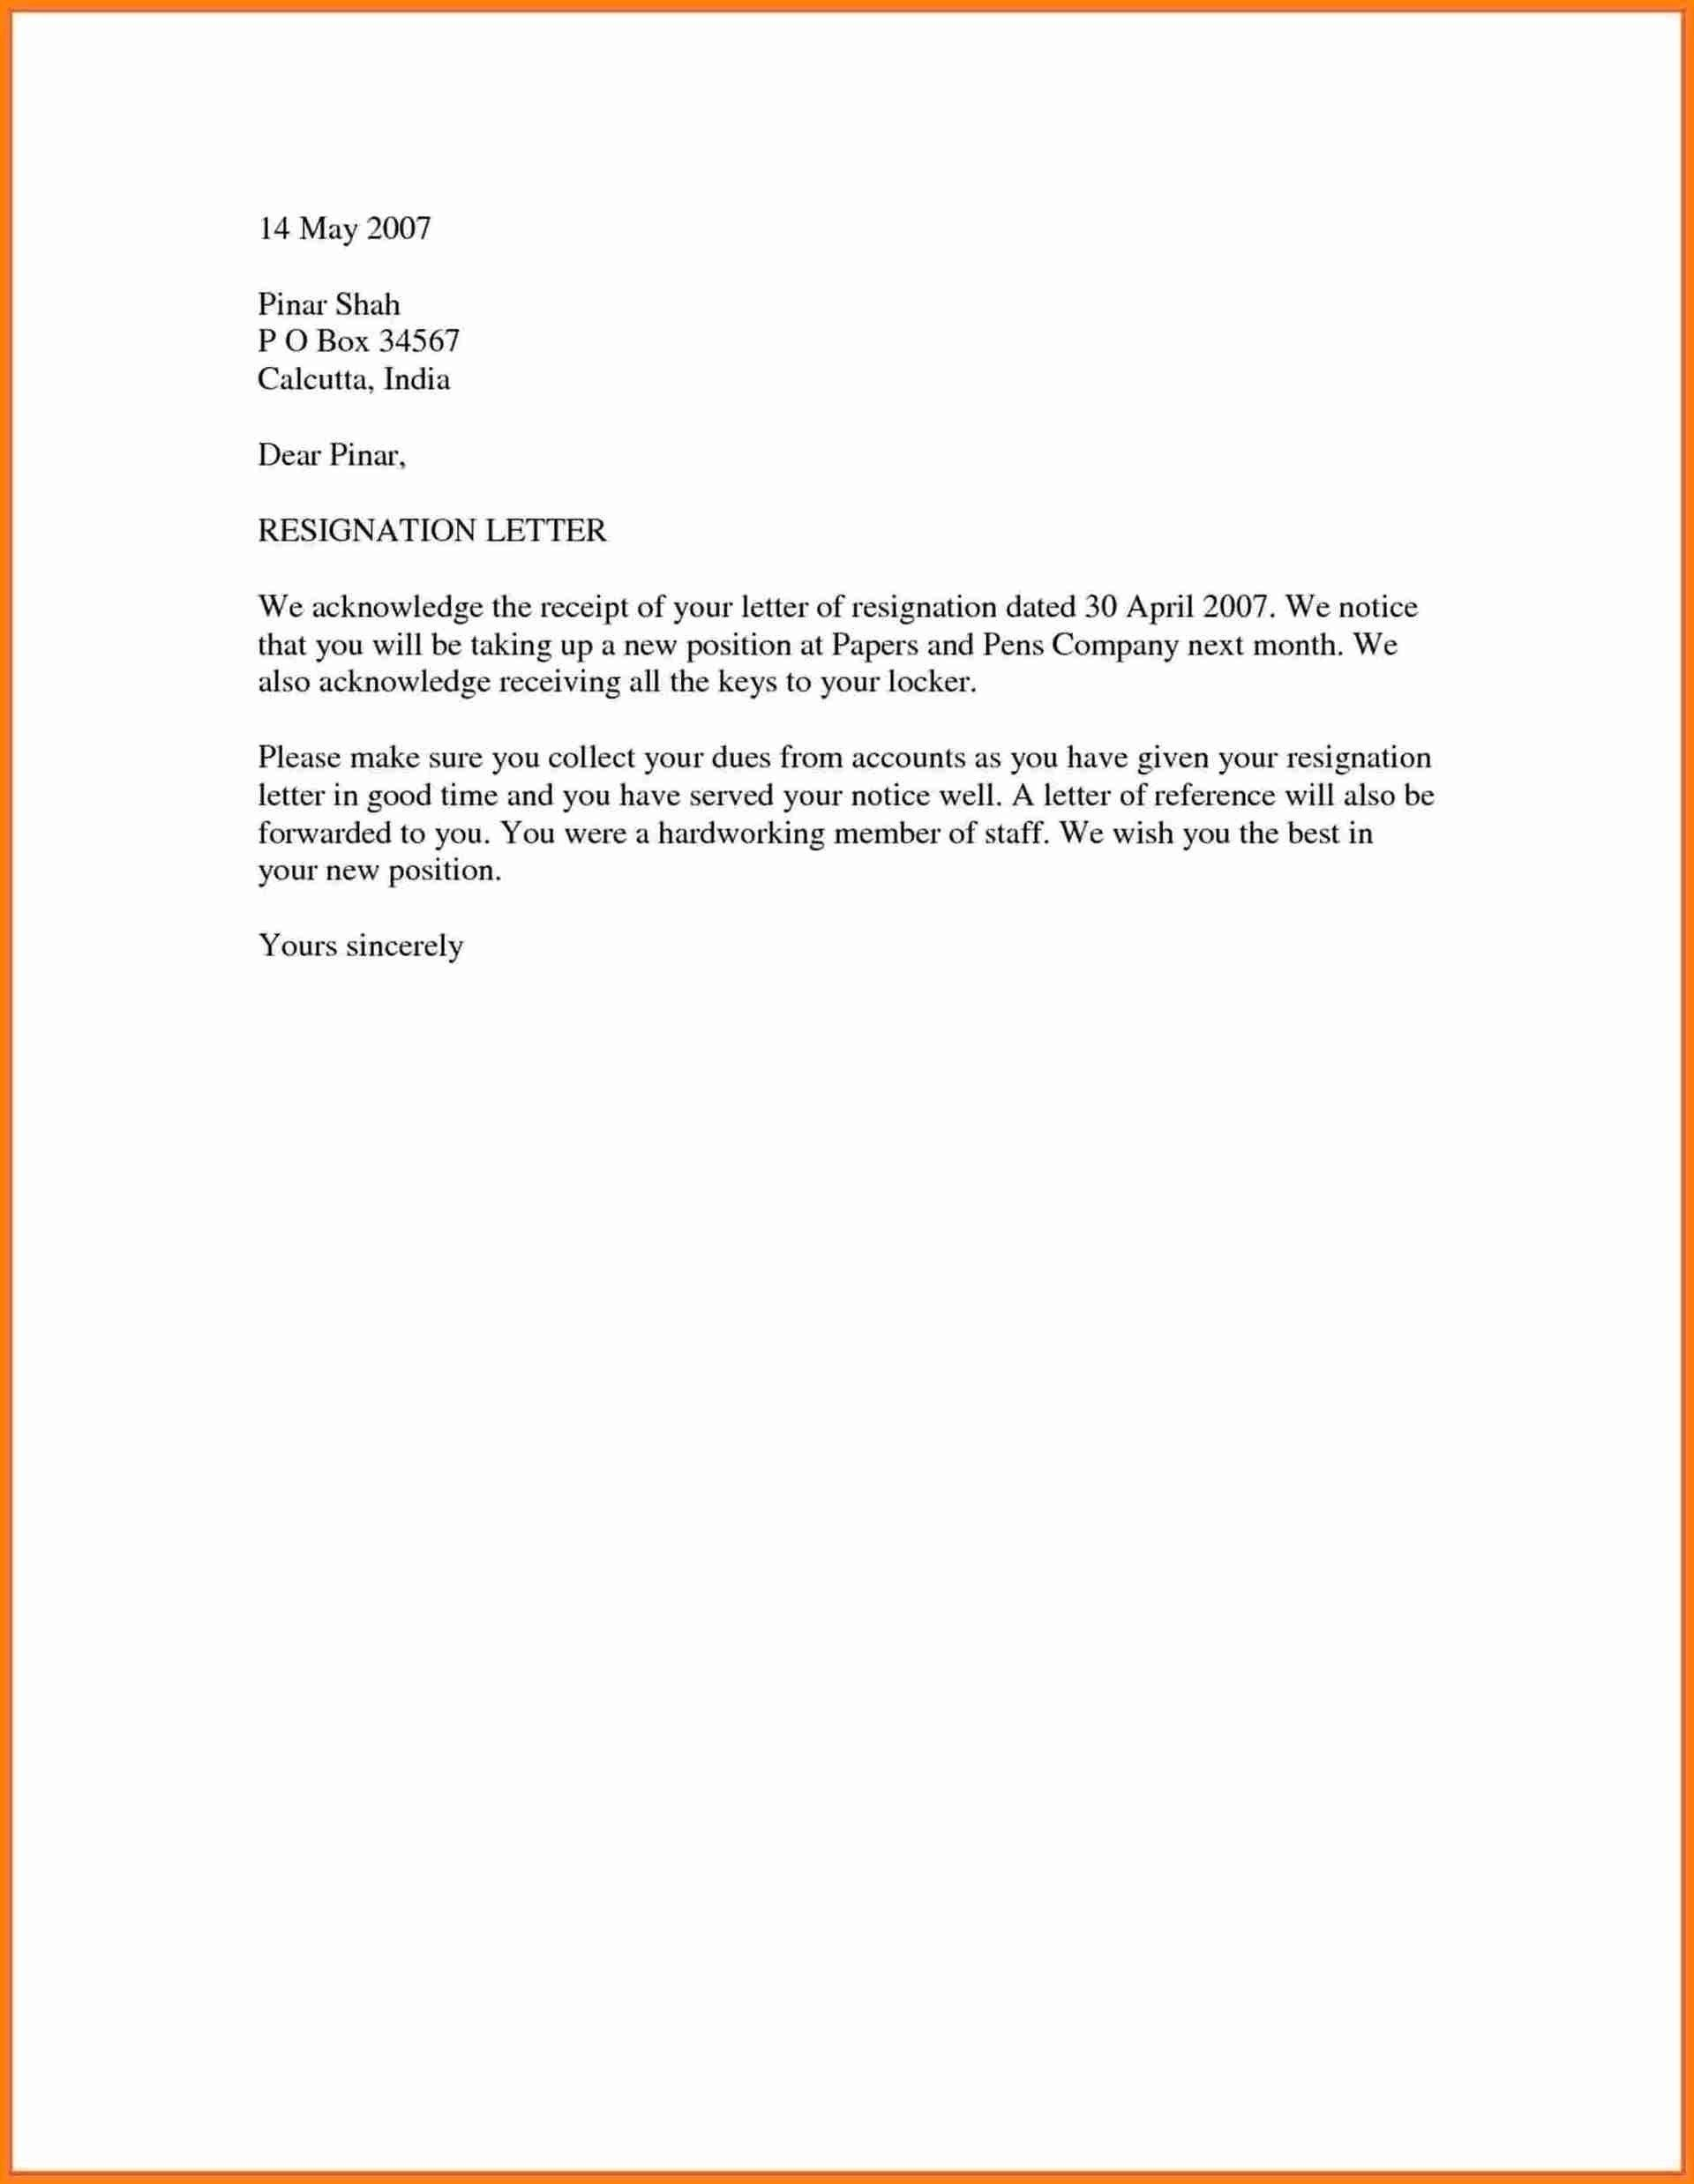 Letter Of Resignation Template What Should You Write Resignation Letter Resignation Letter Format Resignation Template